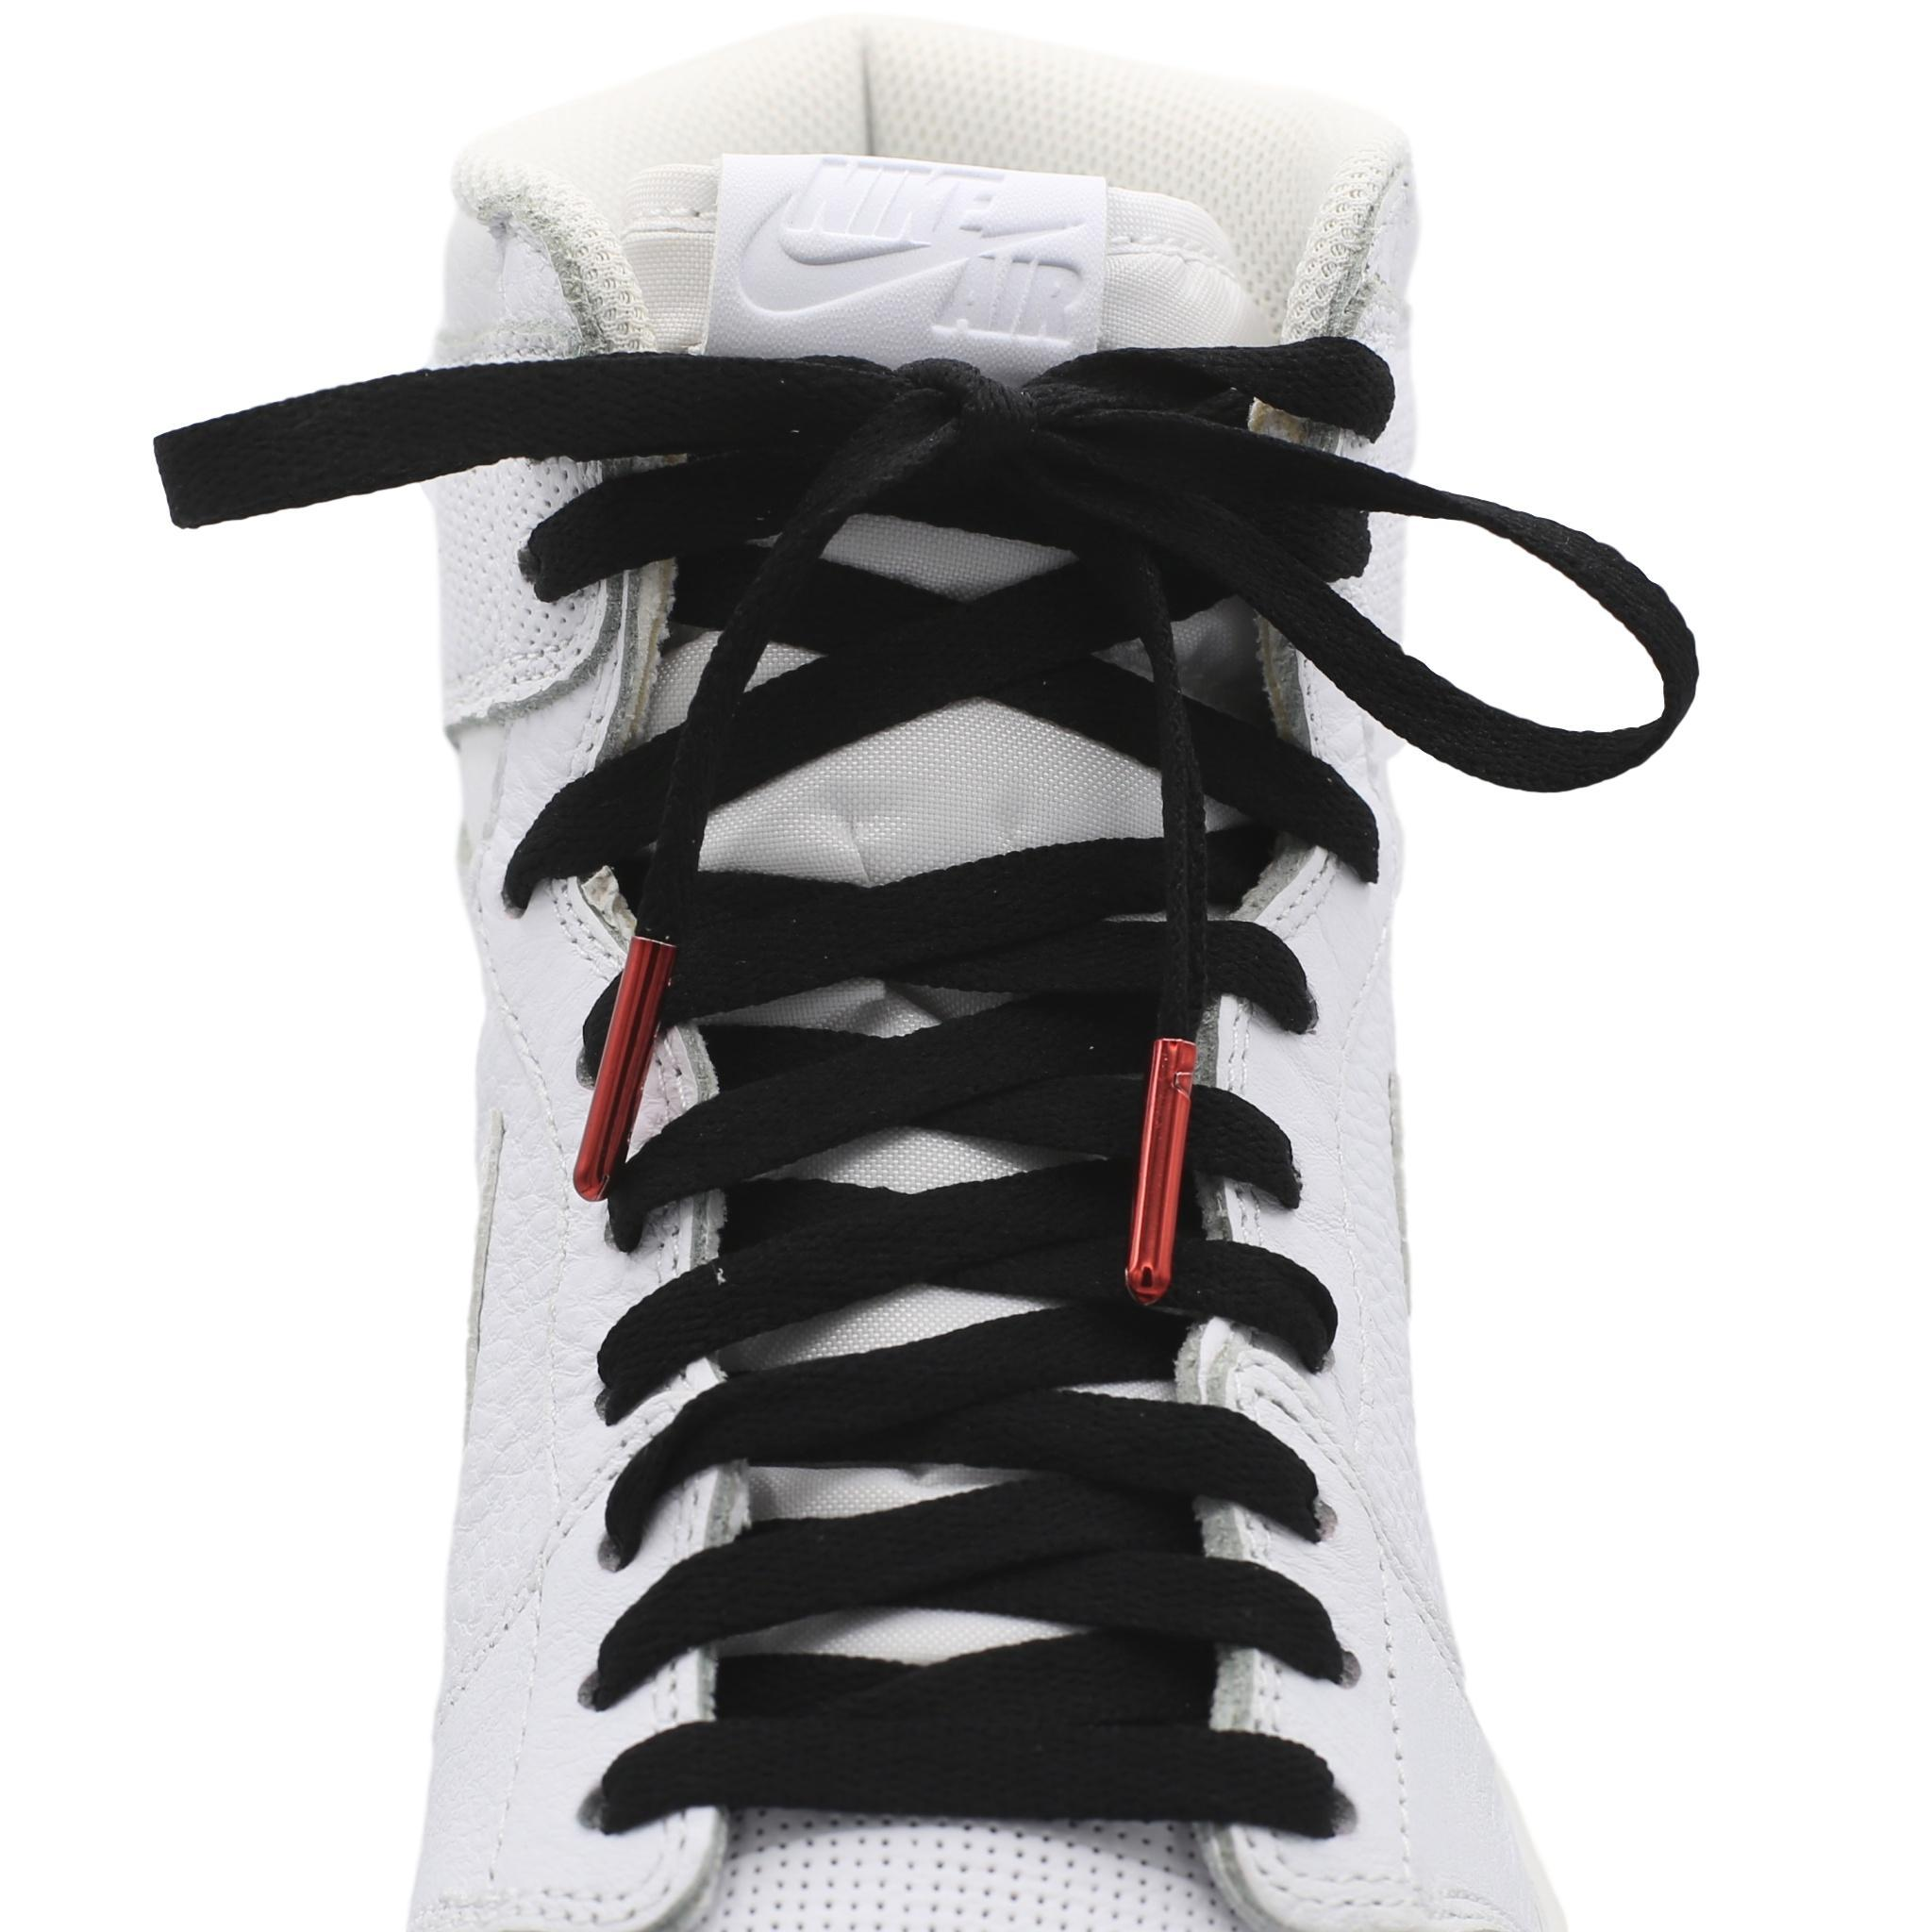 """54/"""" Round White Poly Cotton Shoe Laces with Metal Ends for High Tops"""